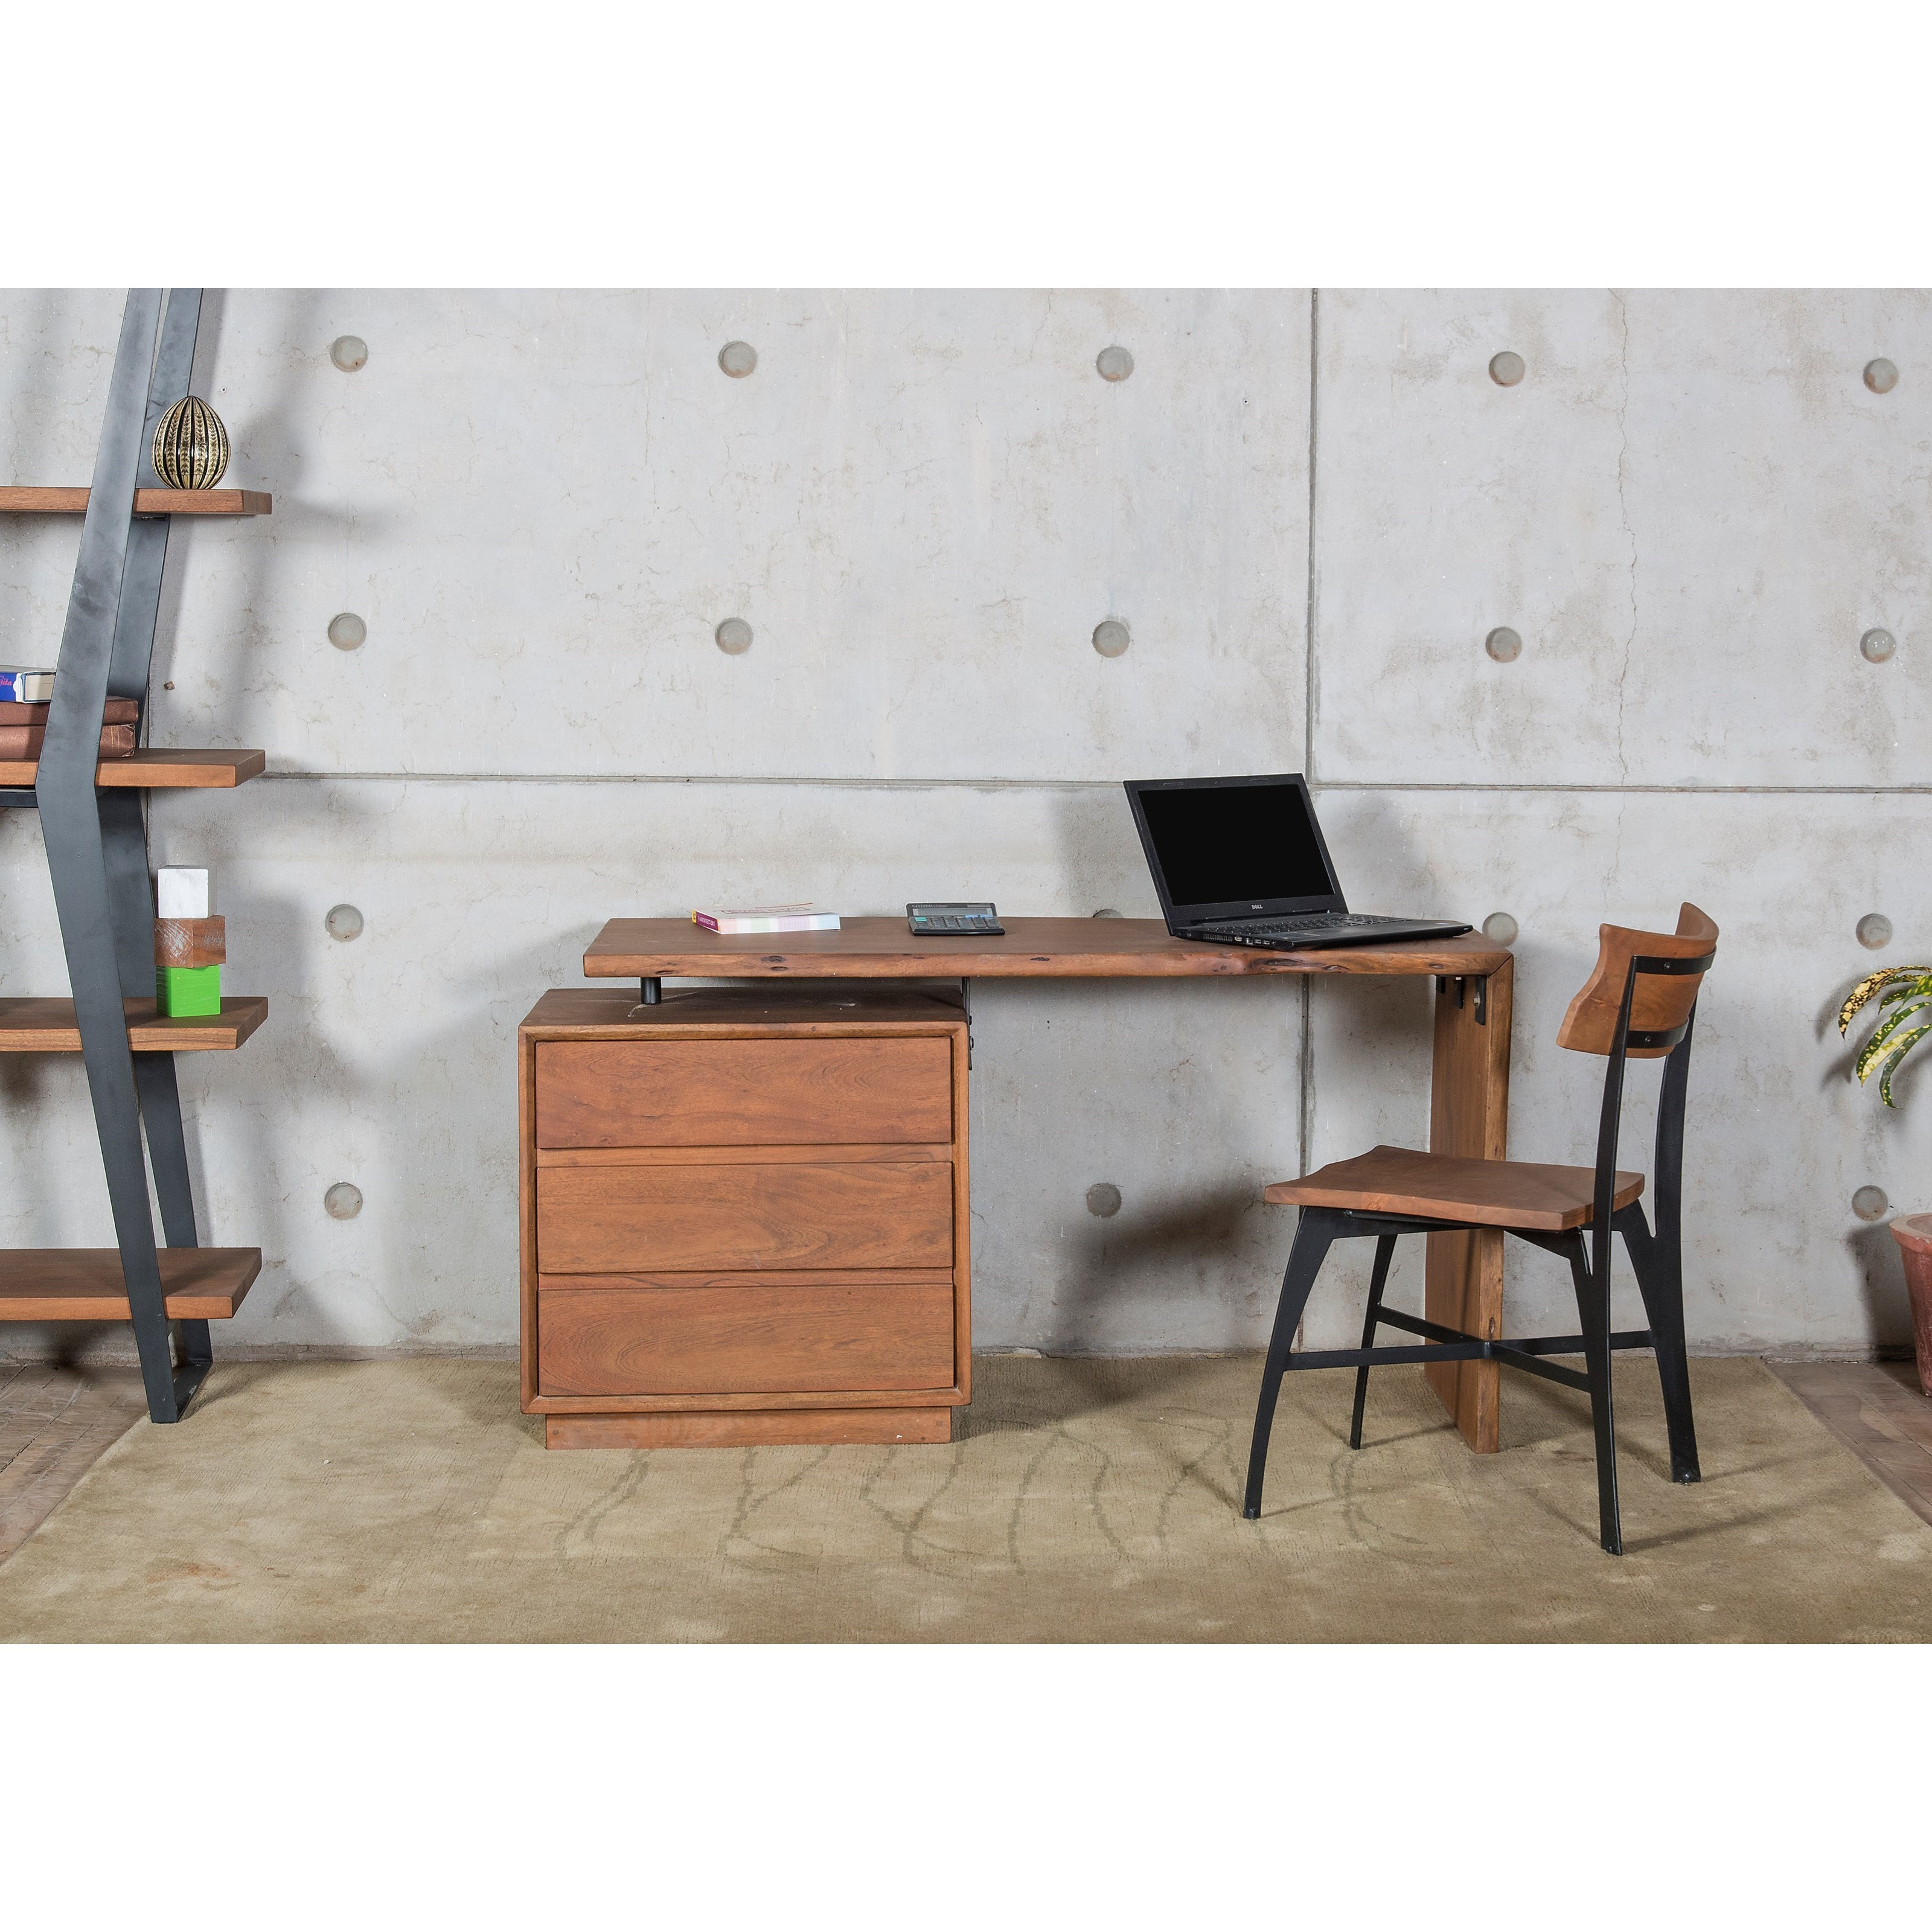 adjustable writing desk Height-adjustable & ergonomic desks writing desks executive desks this adjustable height desk was easy to assemble with just one hitch.